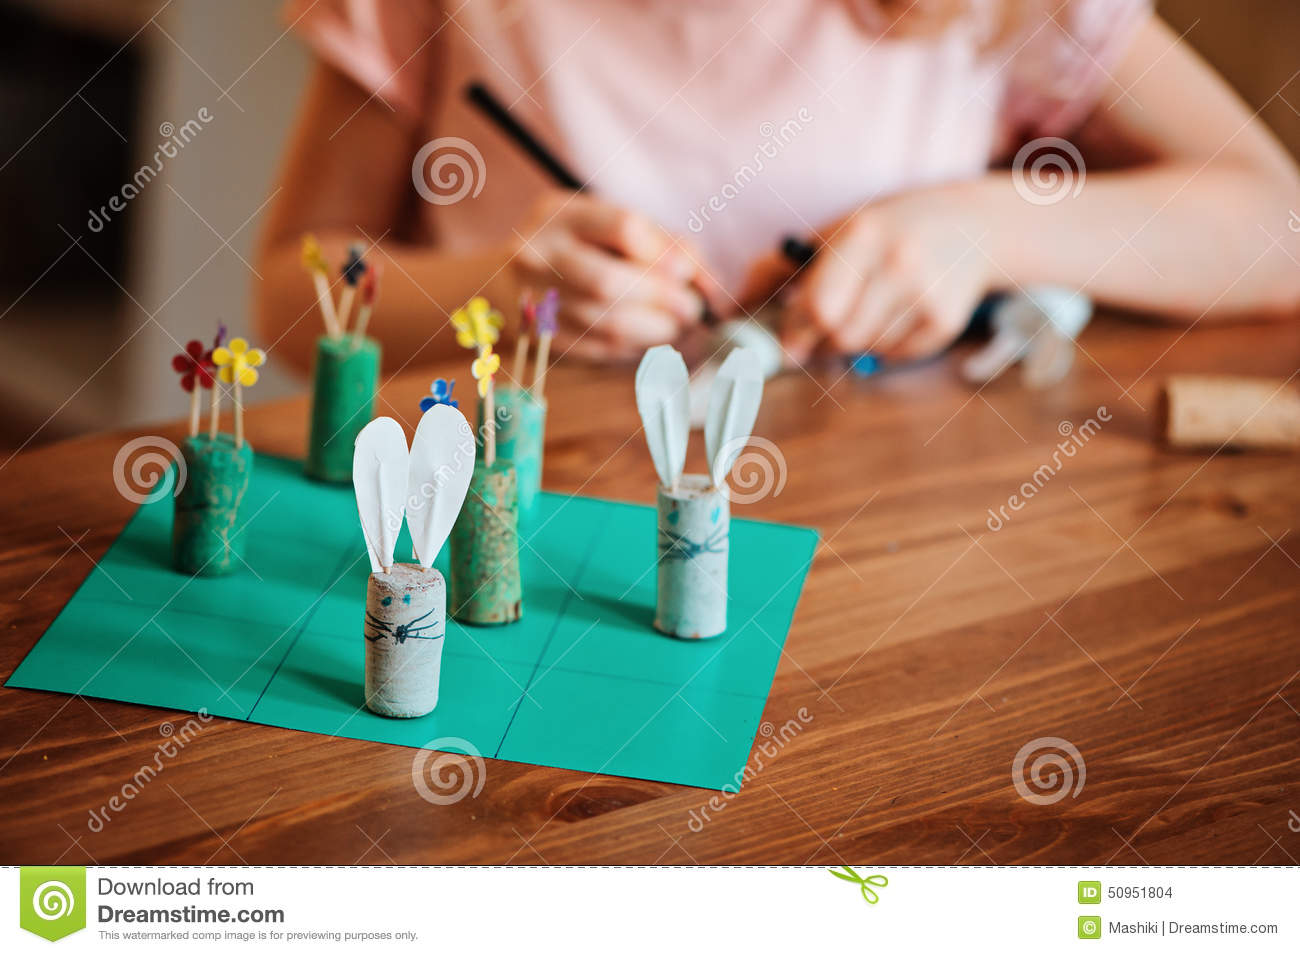 Child Girl Making Easter Craft Tic Tac Toe Game With